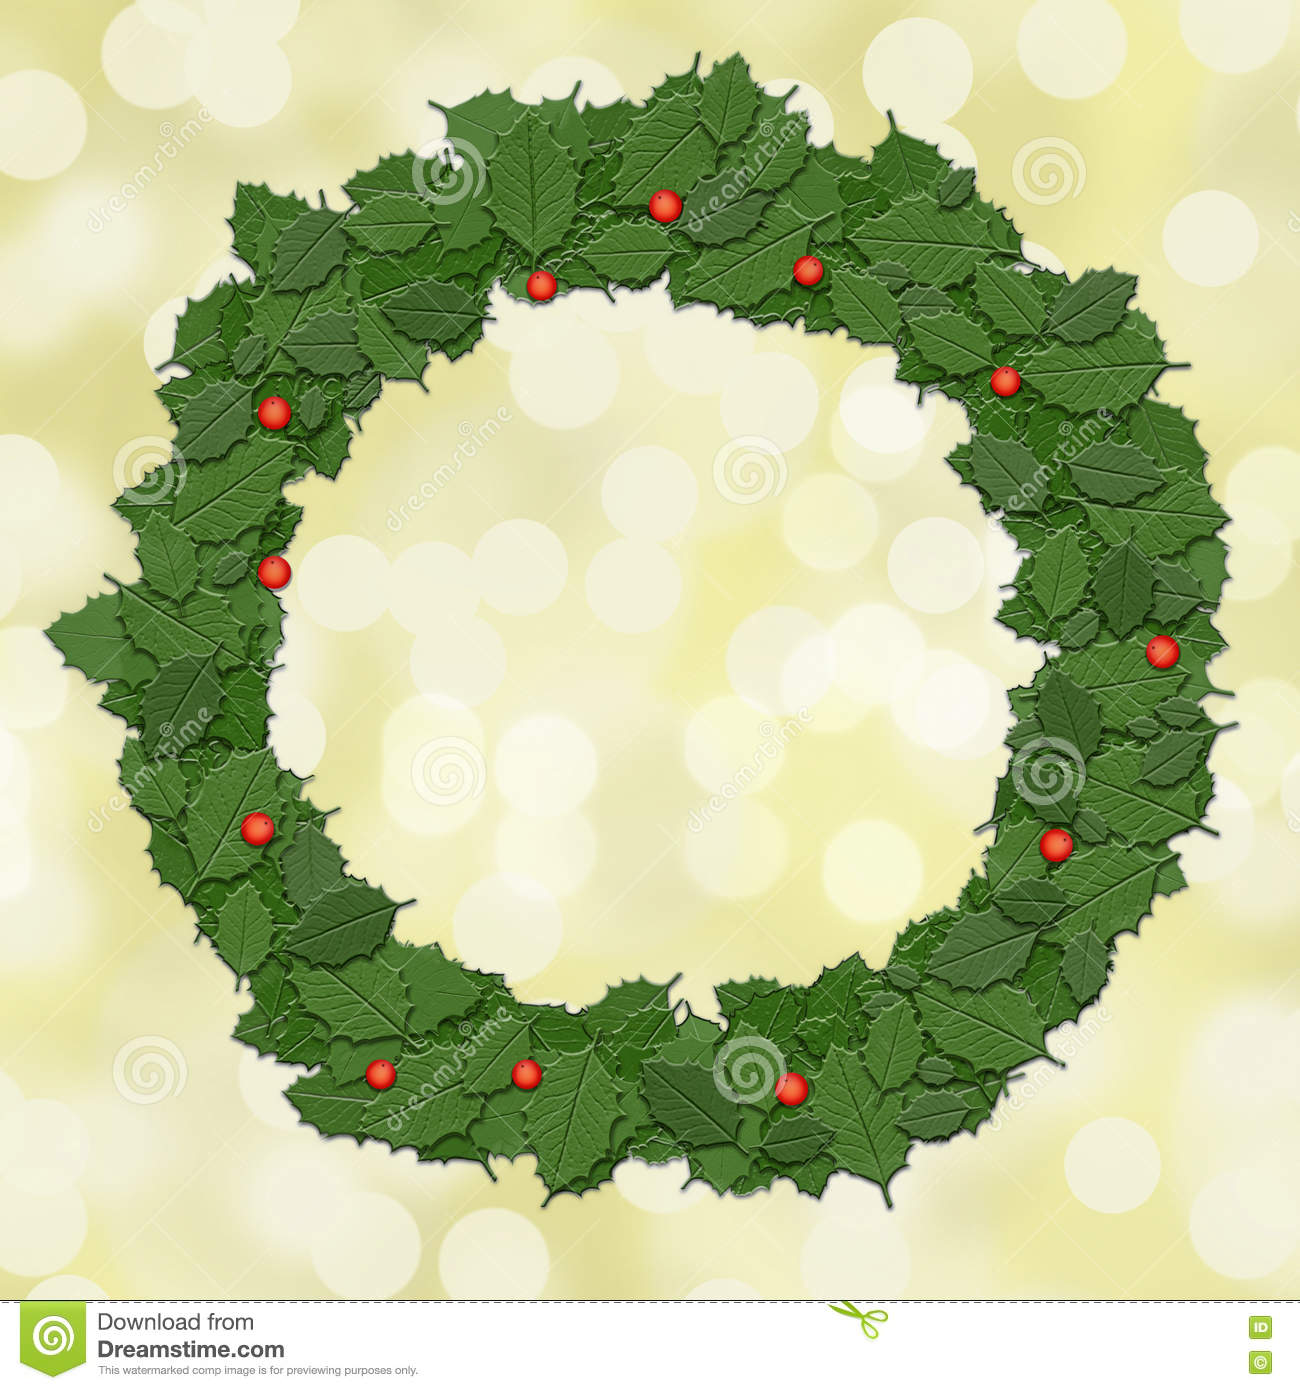 Why is holly a traditional christmas decoration - Holly Leaf Wreath Garland Christmas Decoration